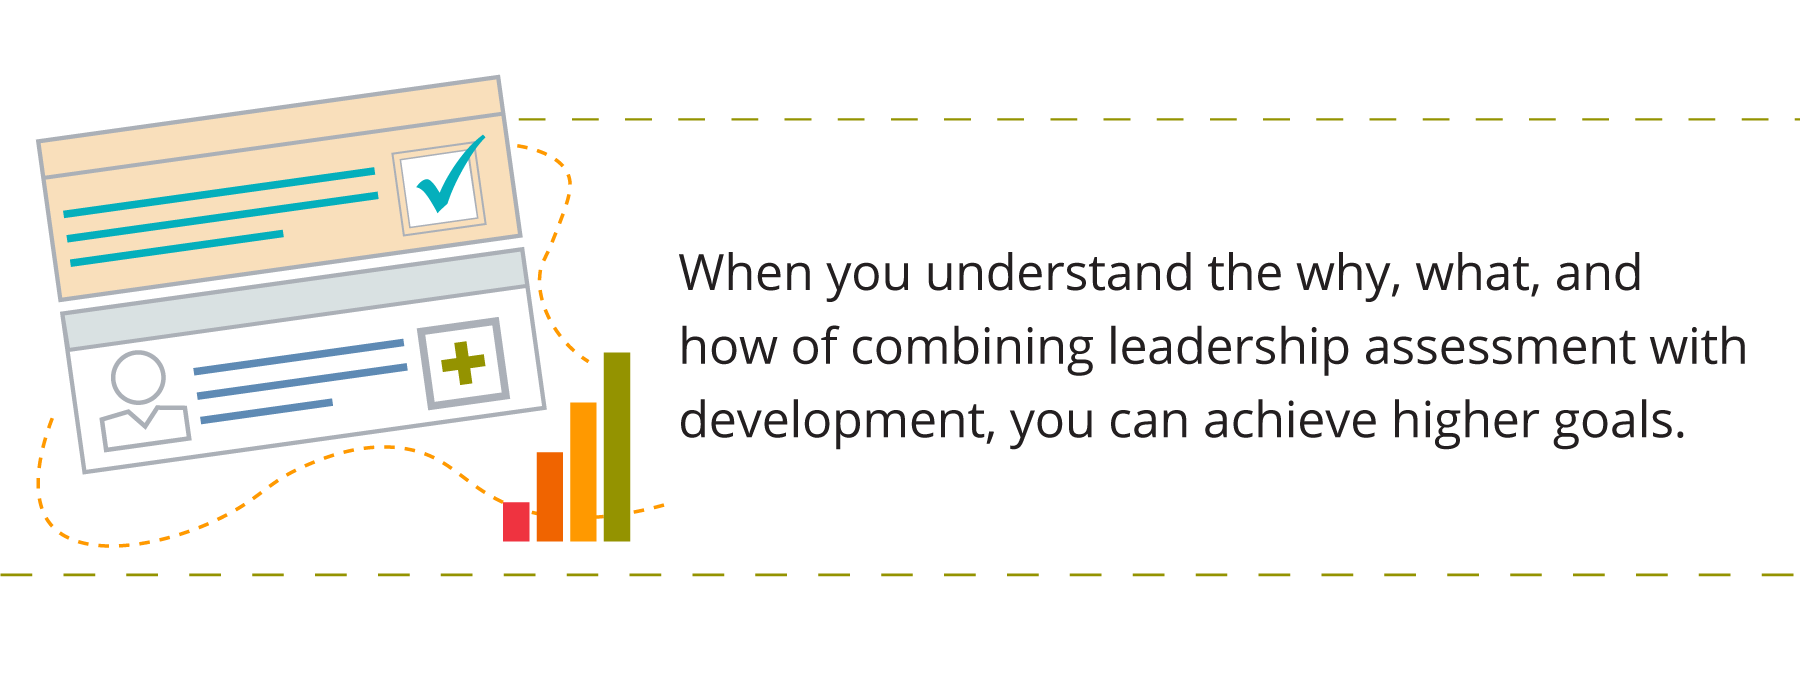 Graphic showing combination of charts and data, representing combining assessment and development. Accompanied by text that says